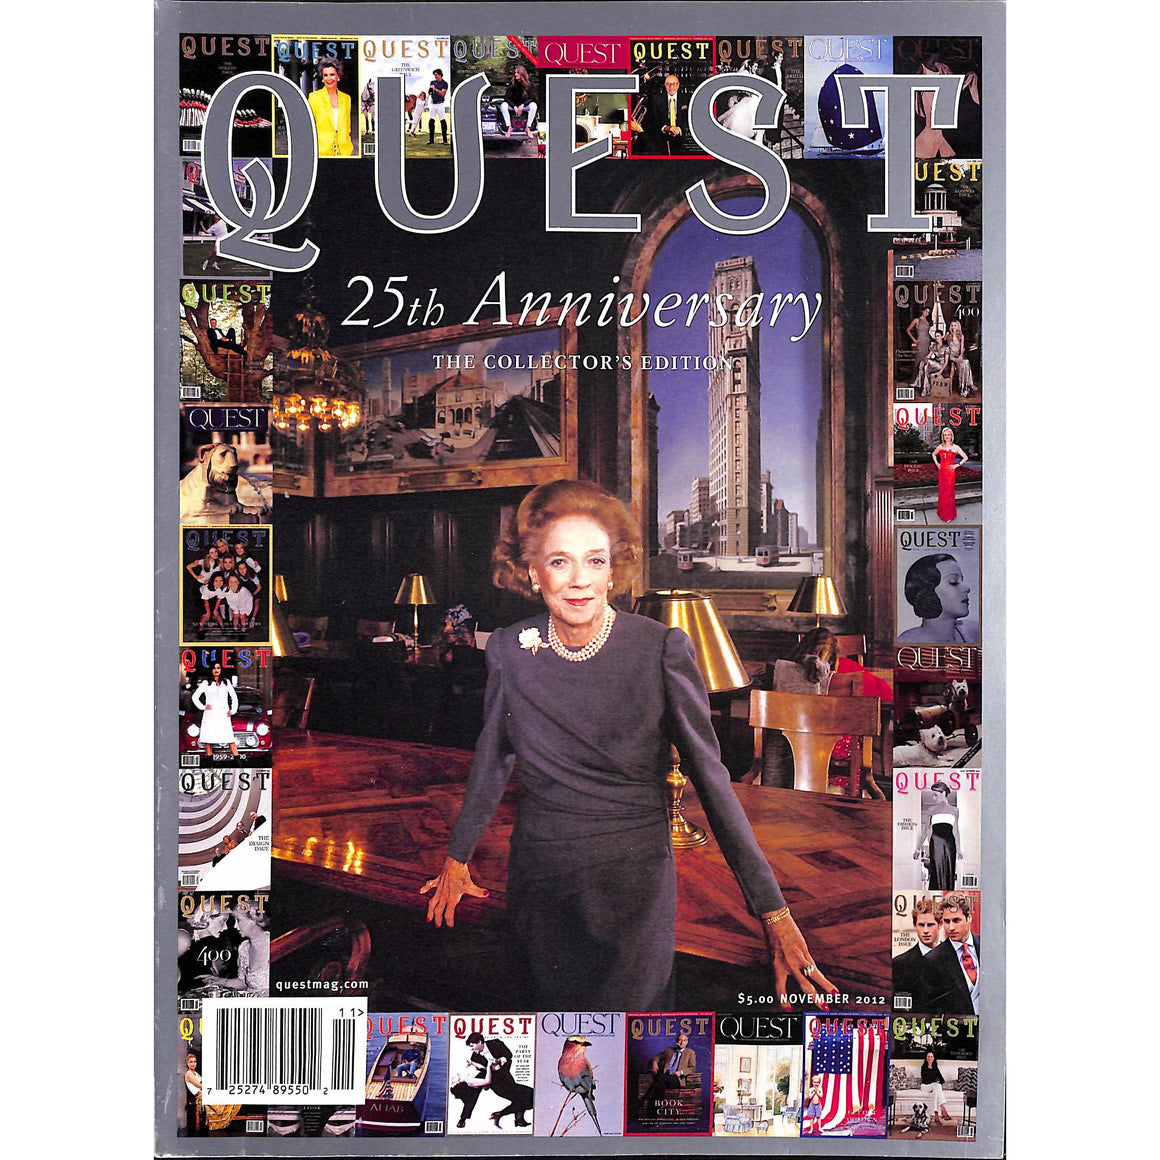 Quest Magazine 25th Anniversary The Collector's Edition